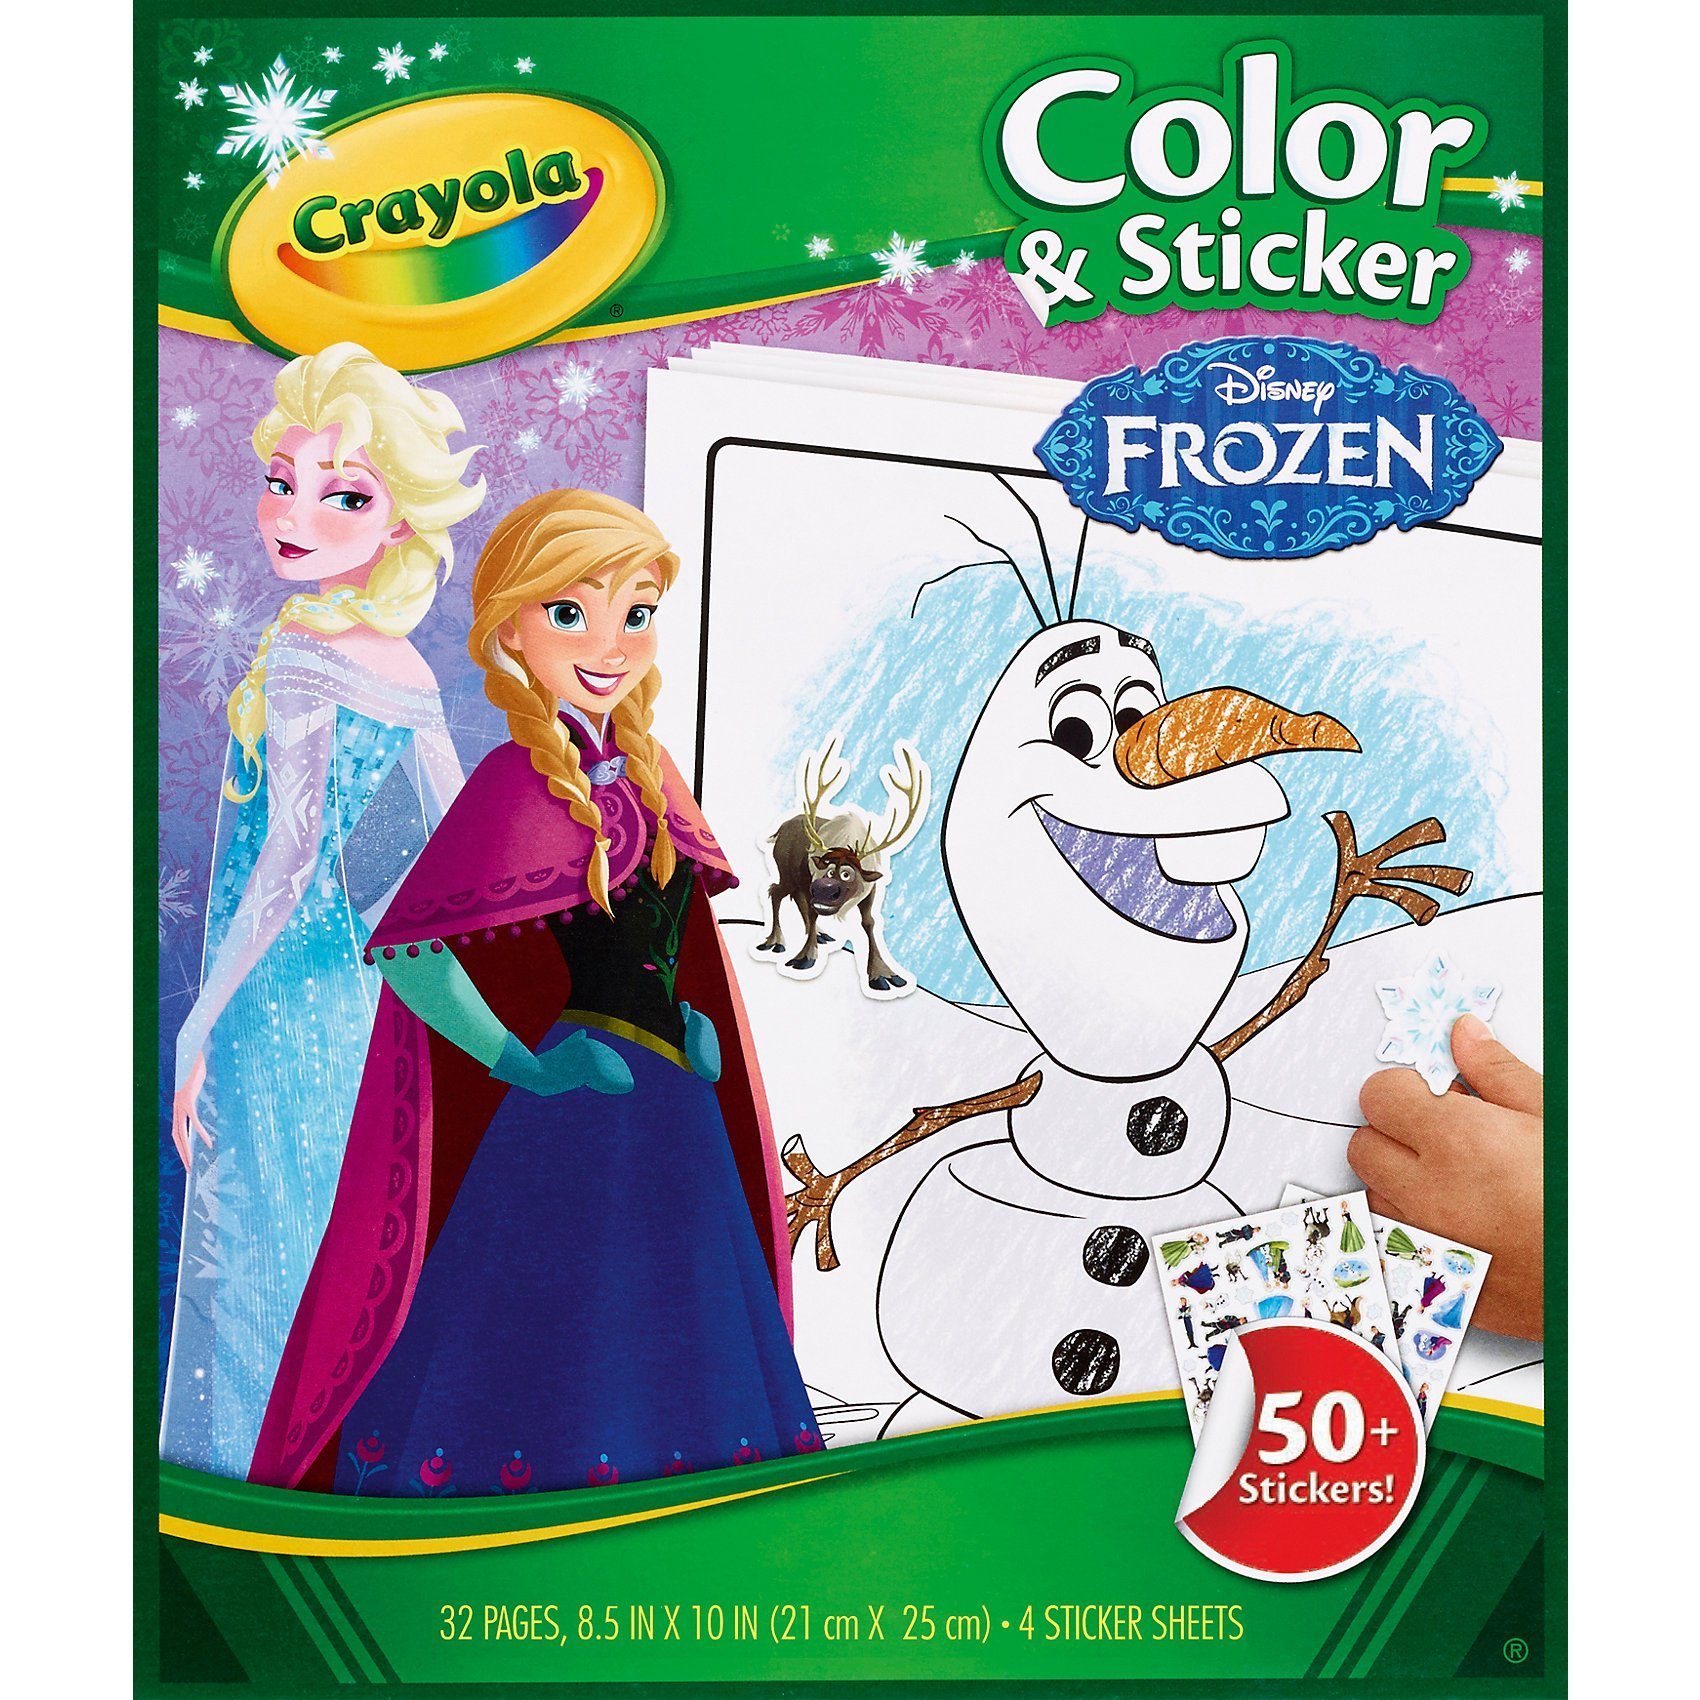 Crayola Color & Stickerbook - Frozen